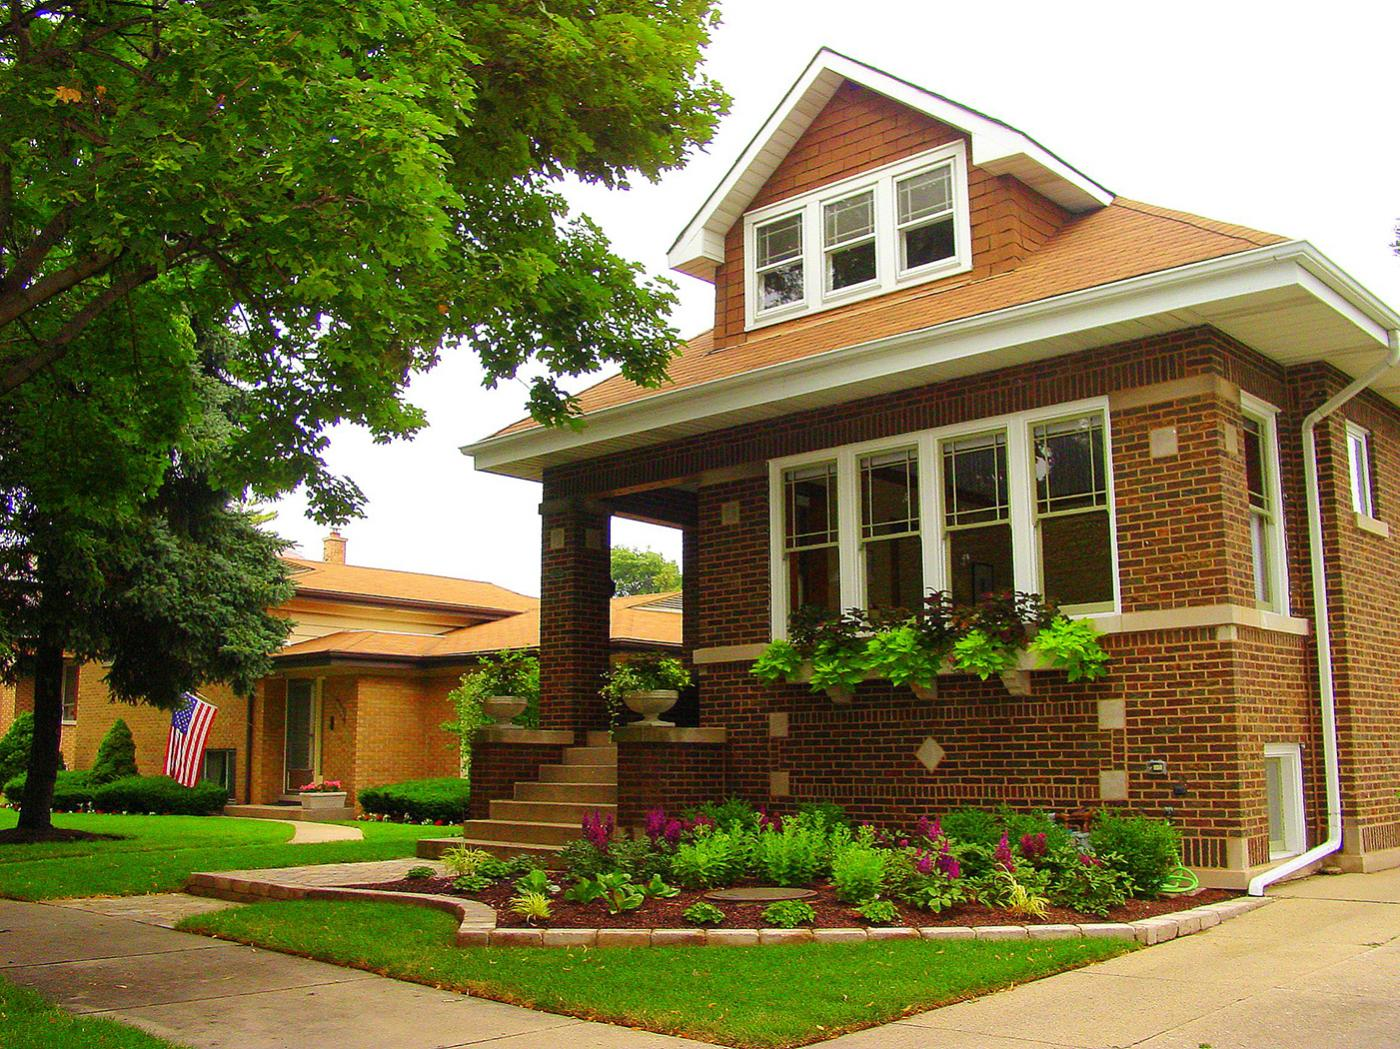 The Story Of The Iconic Chicago Home Wttw Chicago